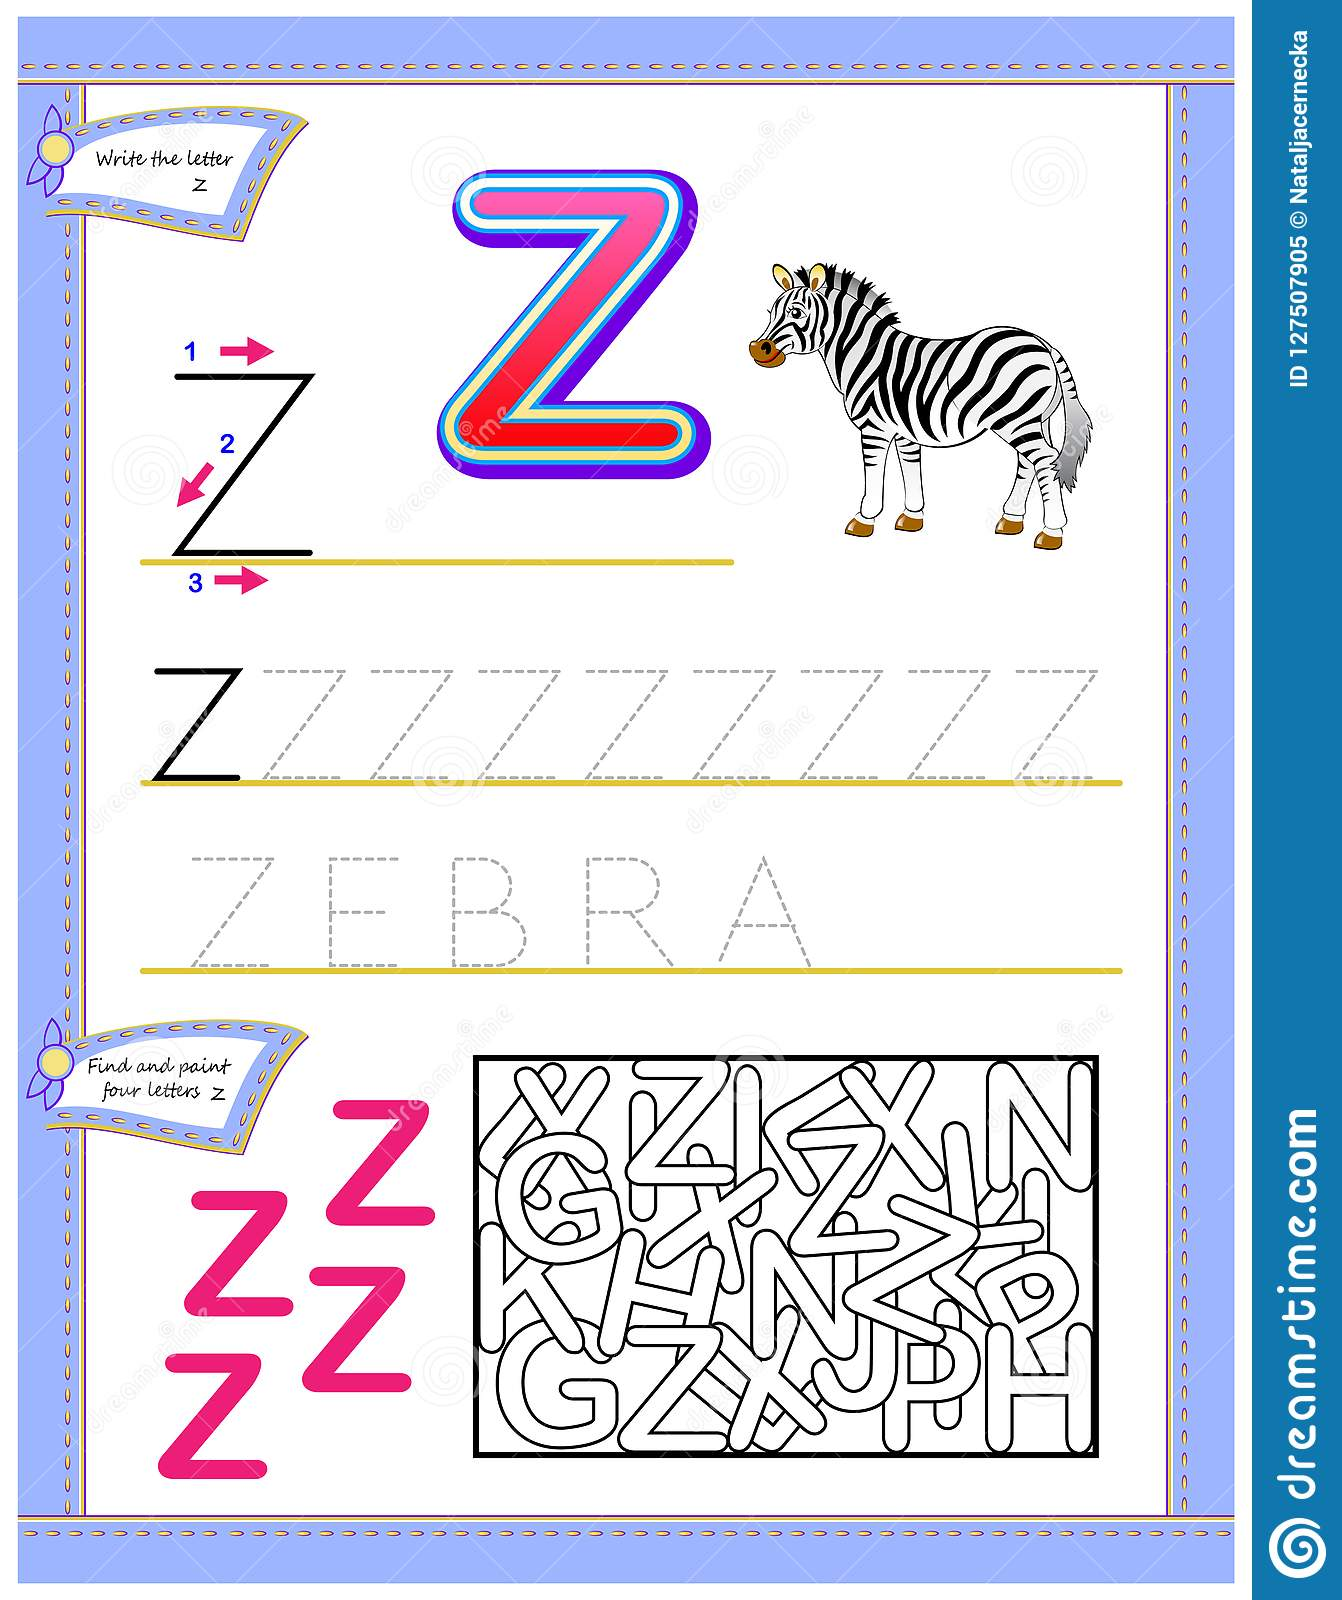 Worksheet For Kids With Letter Z For Study English